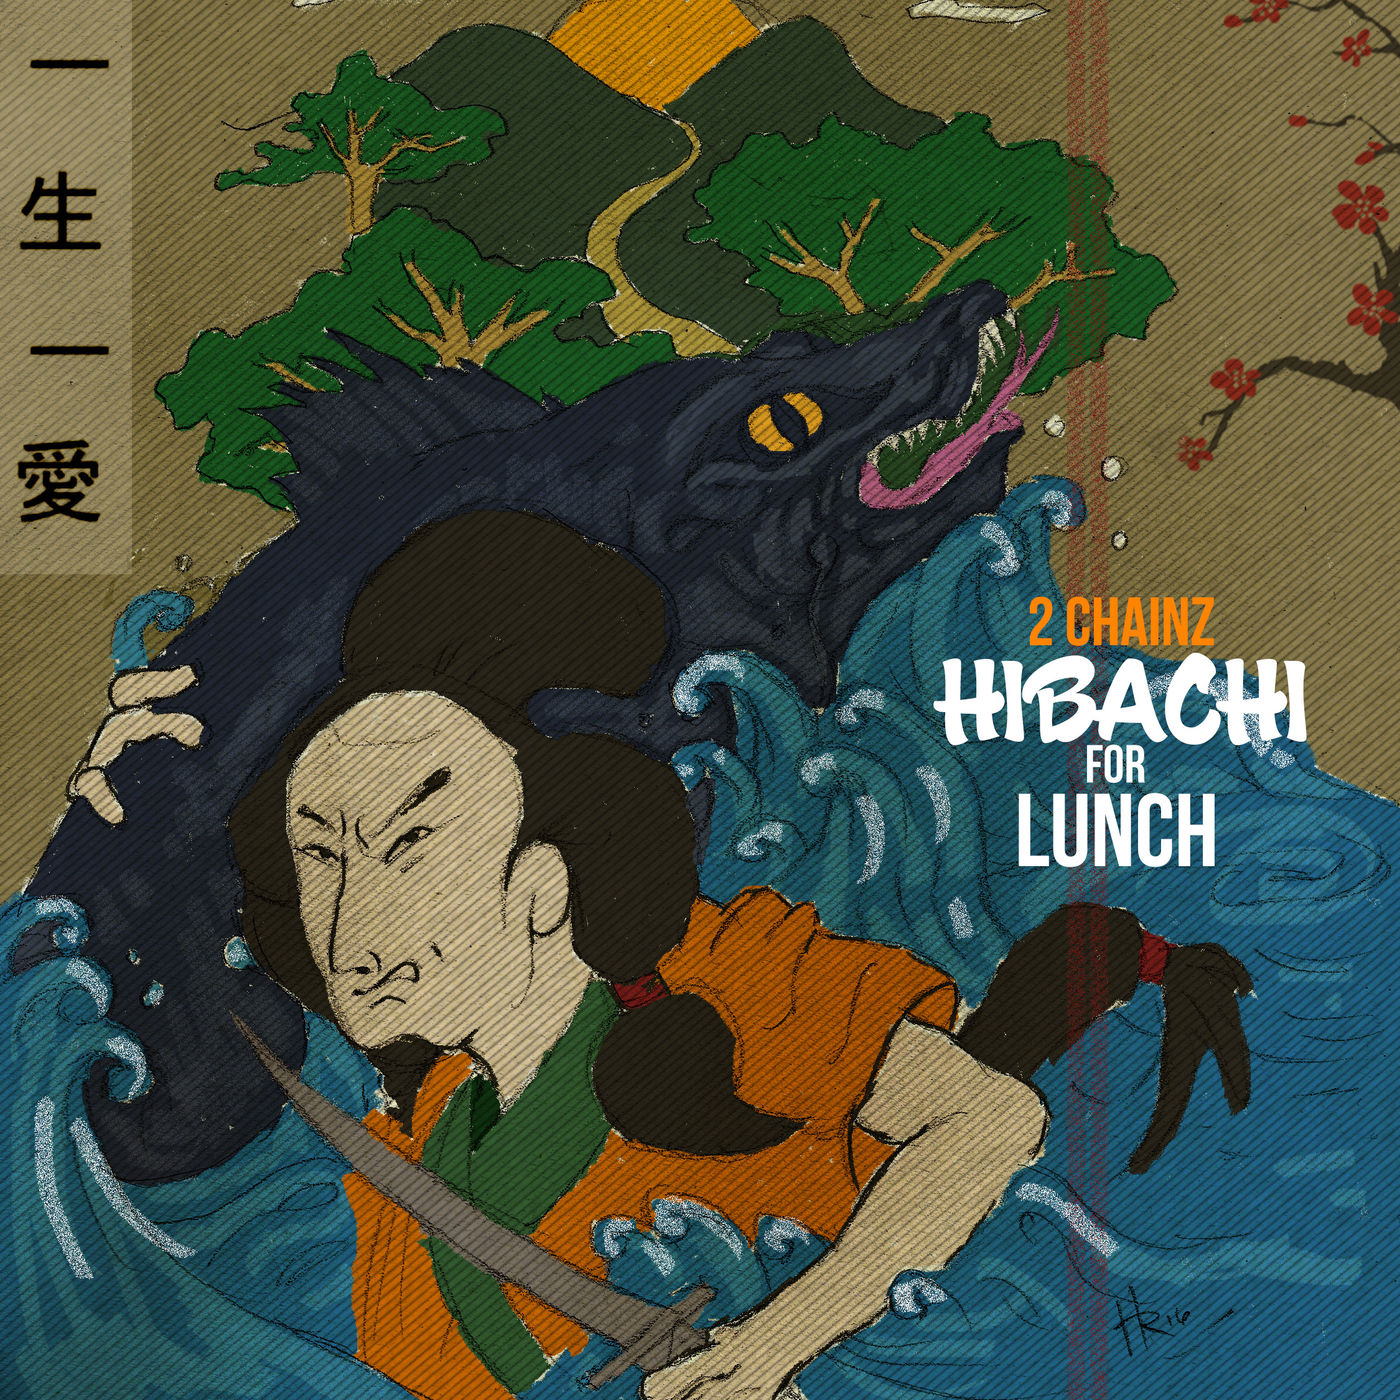 2 Chainz - Hibachi for Lunch - EP Cover